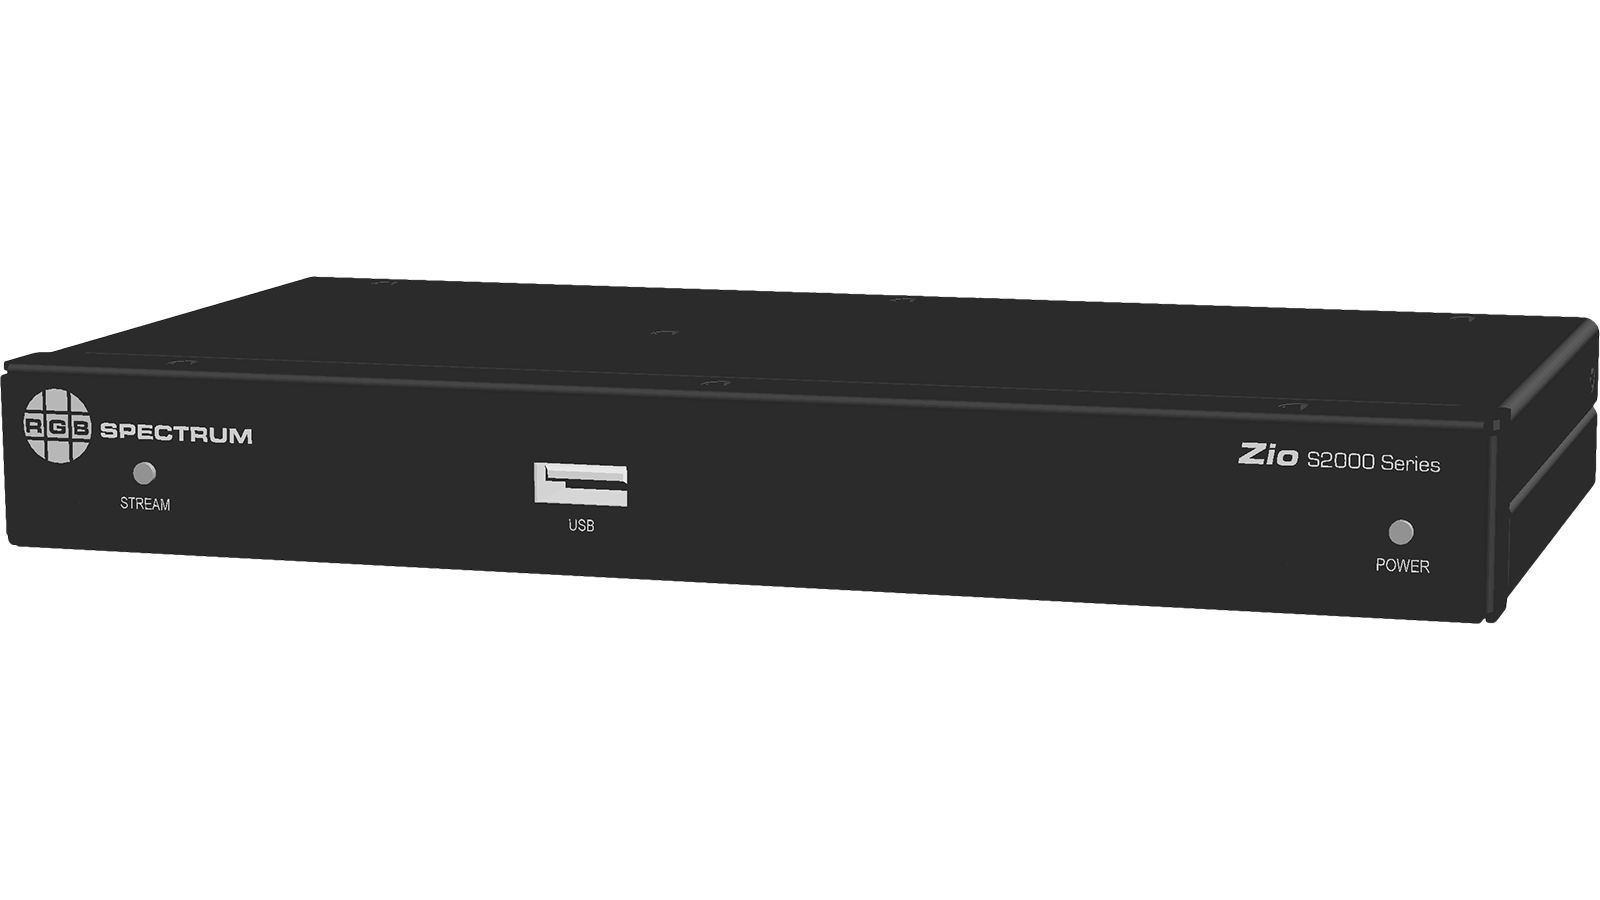 S2000 Series Encoder: Front Panel